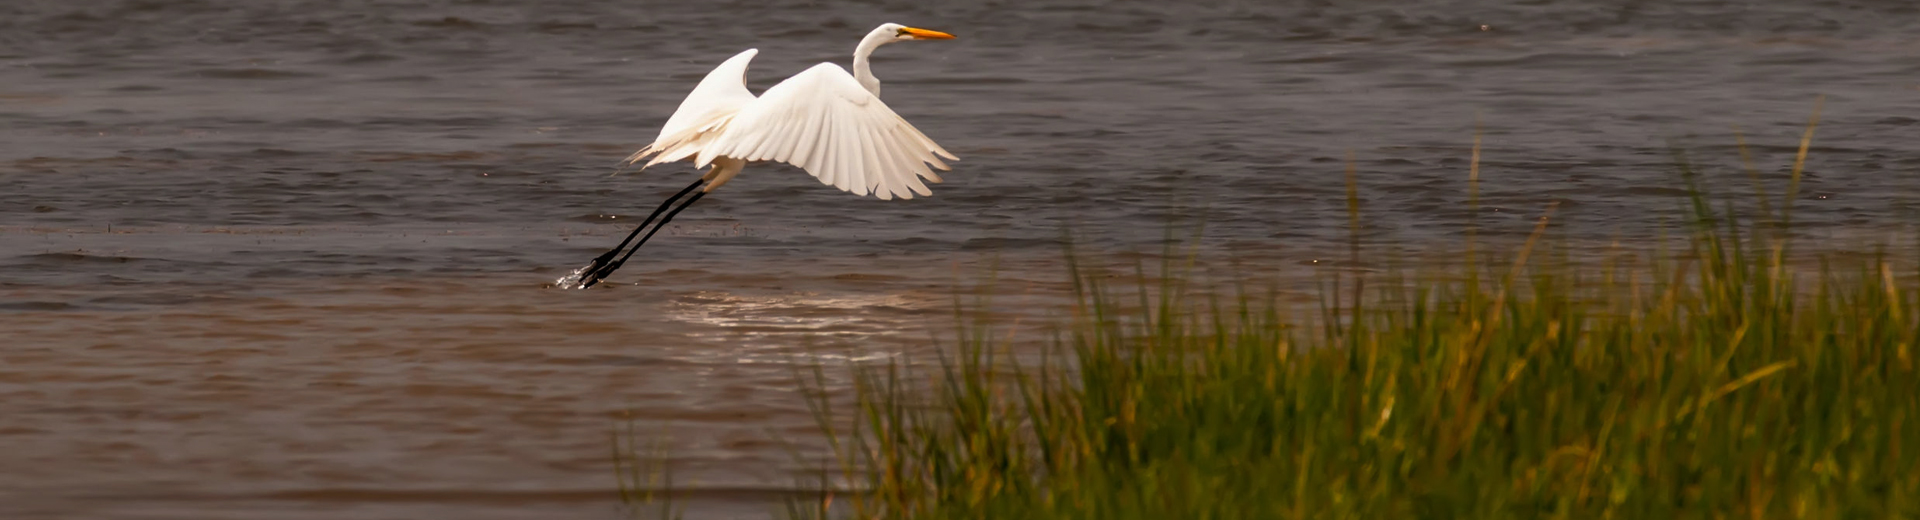 egret in outer banks